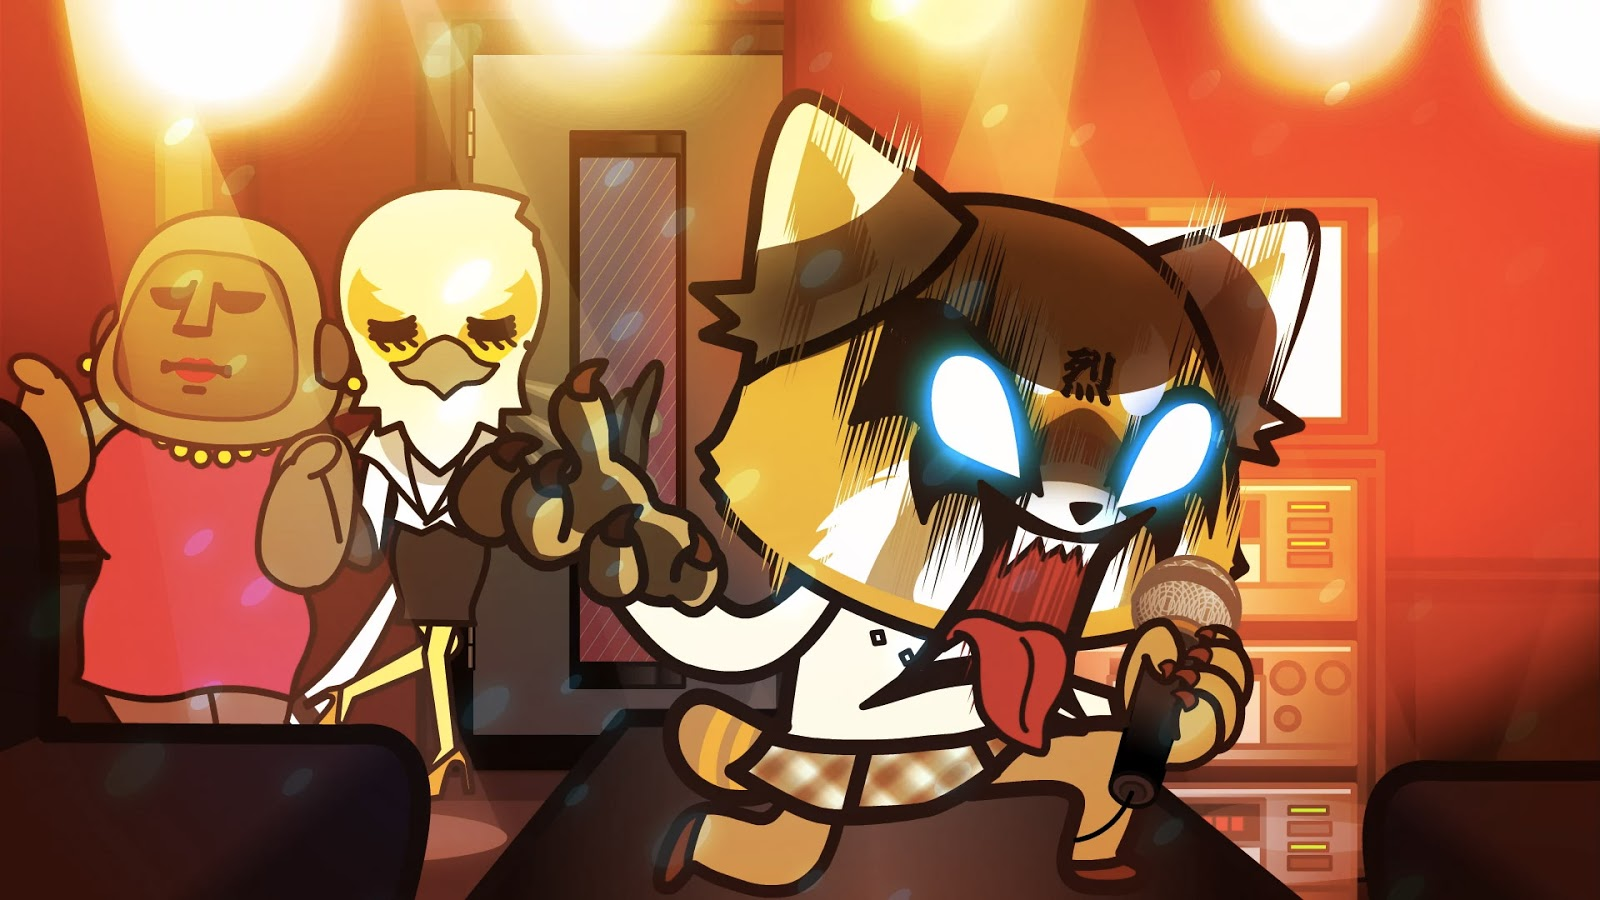 A cute, but angry, anime red panda is screaming into a microphone as an anime gorilla and anime bird watch.